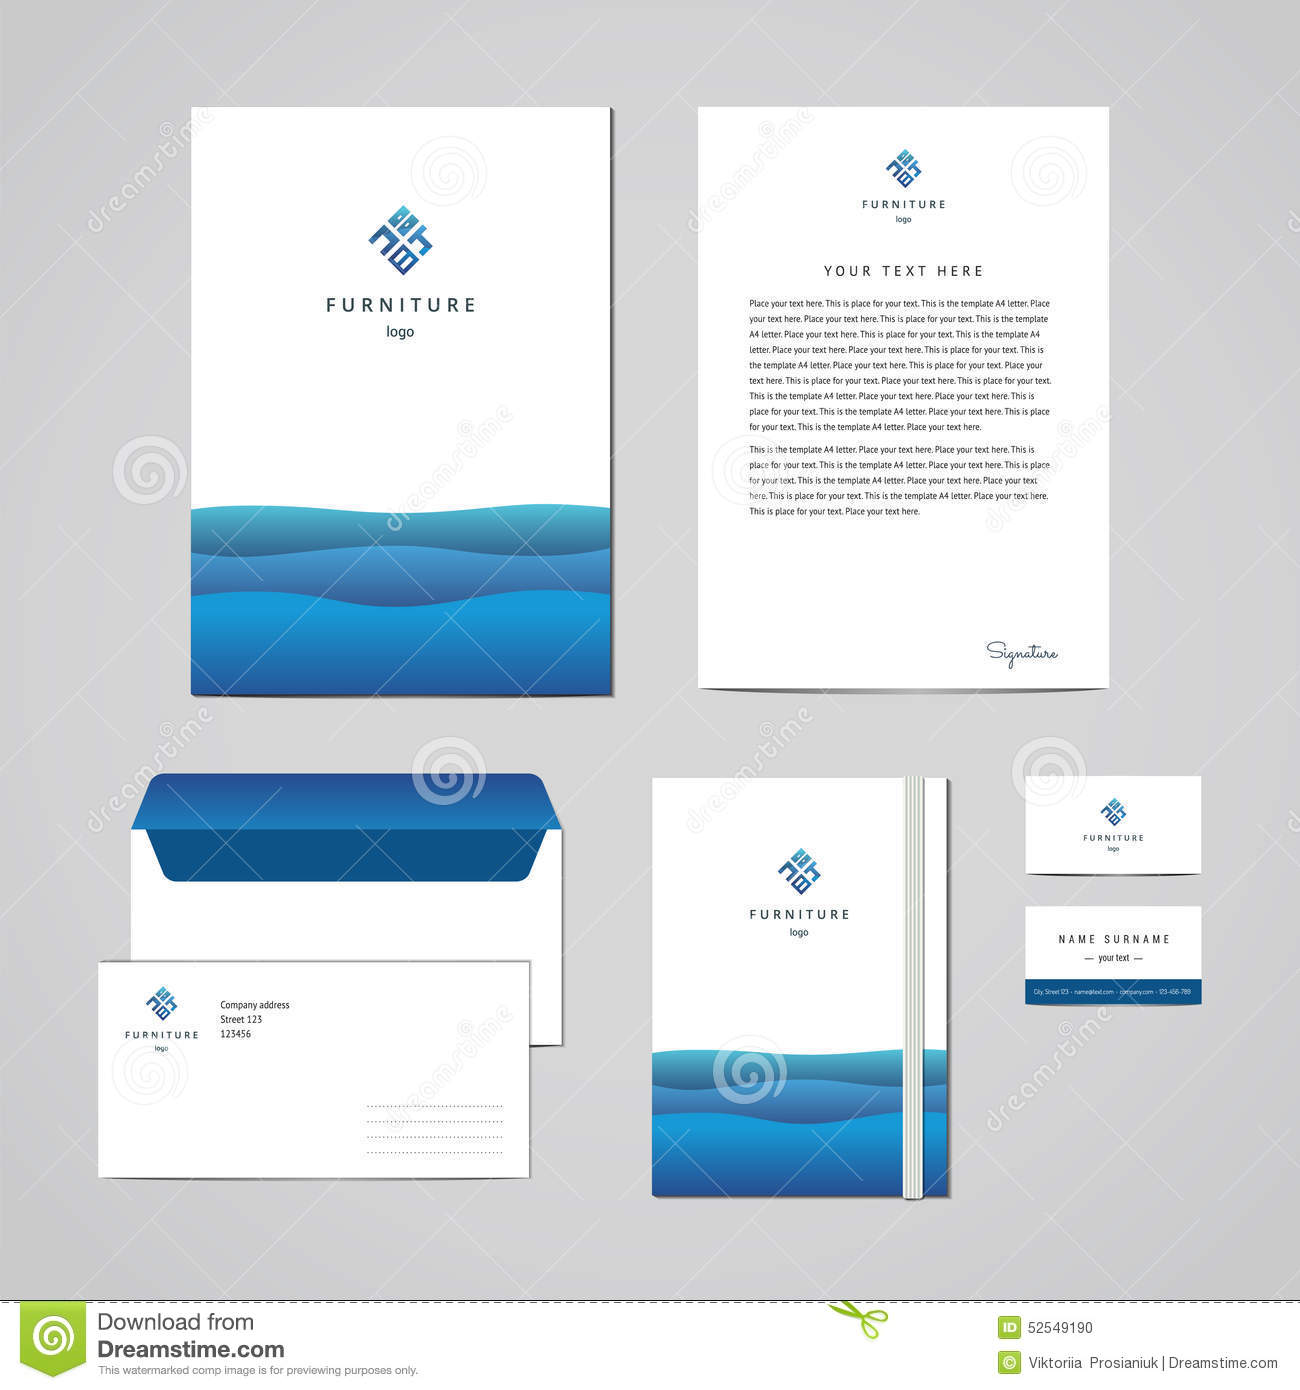 Letterhead Envelopes: Corporate Identity Furniture Company Blue Design Template